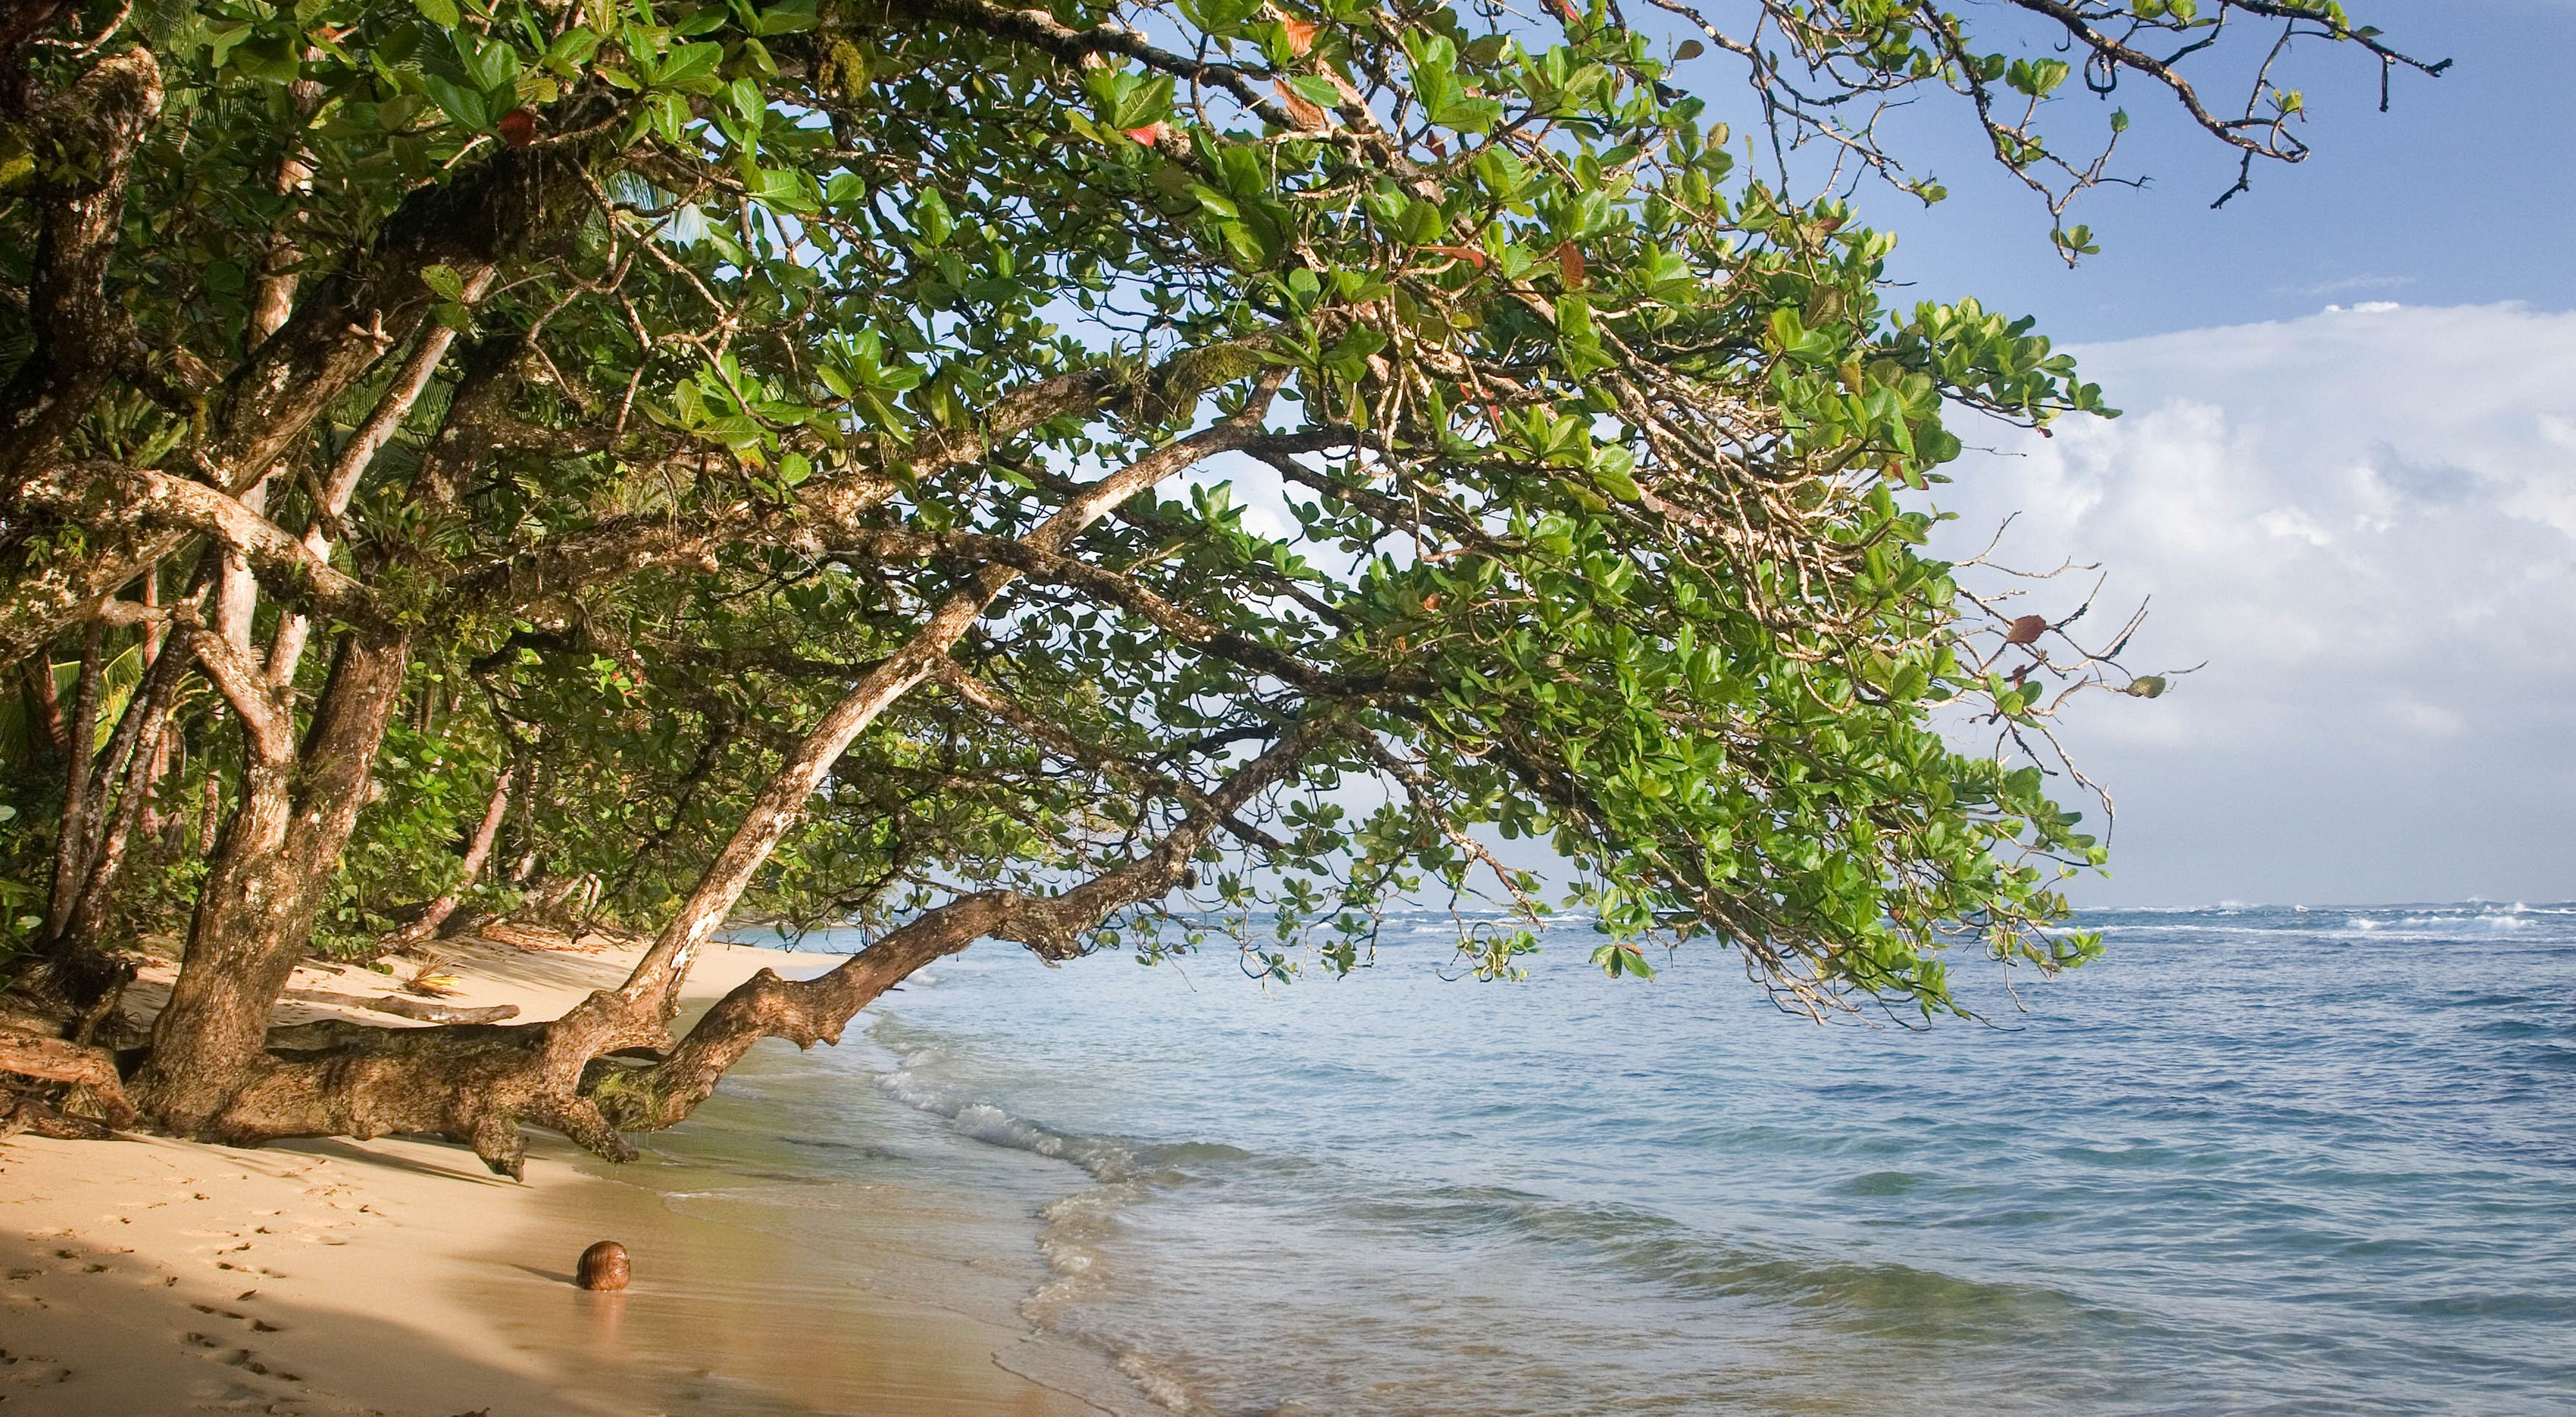 Mangrove trees overhang the water on Punta Vieja, the southeast tip of Bastimentos Island, Bocas del Toro, Panama. The area is home to four National Protected Areas as well as sea turtles, manatees, and some of the healthiest coral reefs in the Caribbean.